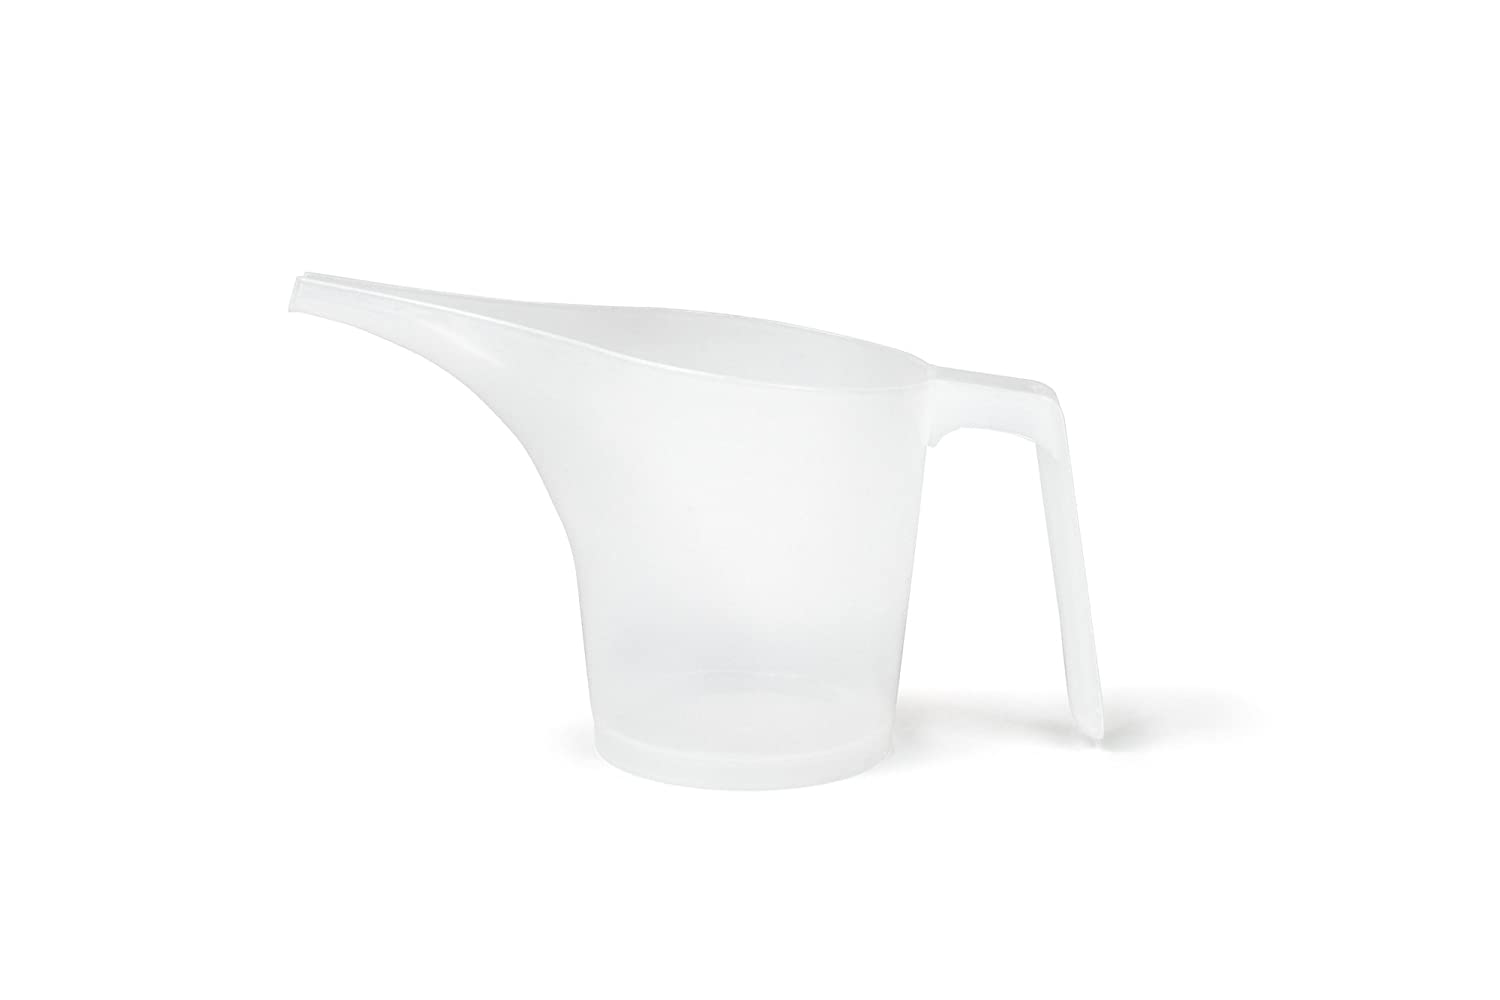 Fox Run 4831 Easy Pour Measuring Cup/Funnel, Plastic, 3.5-Cup Fox Run Brands